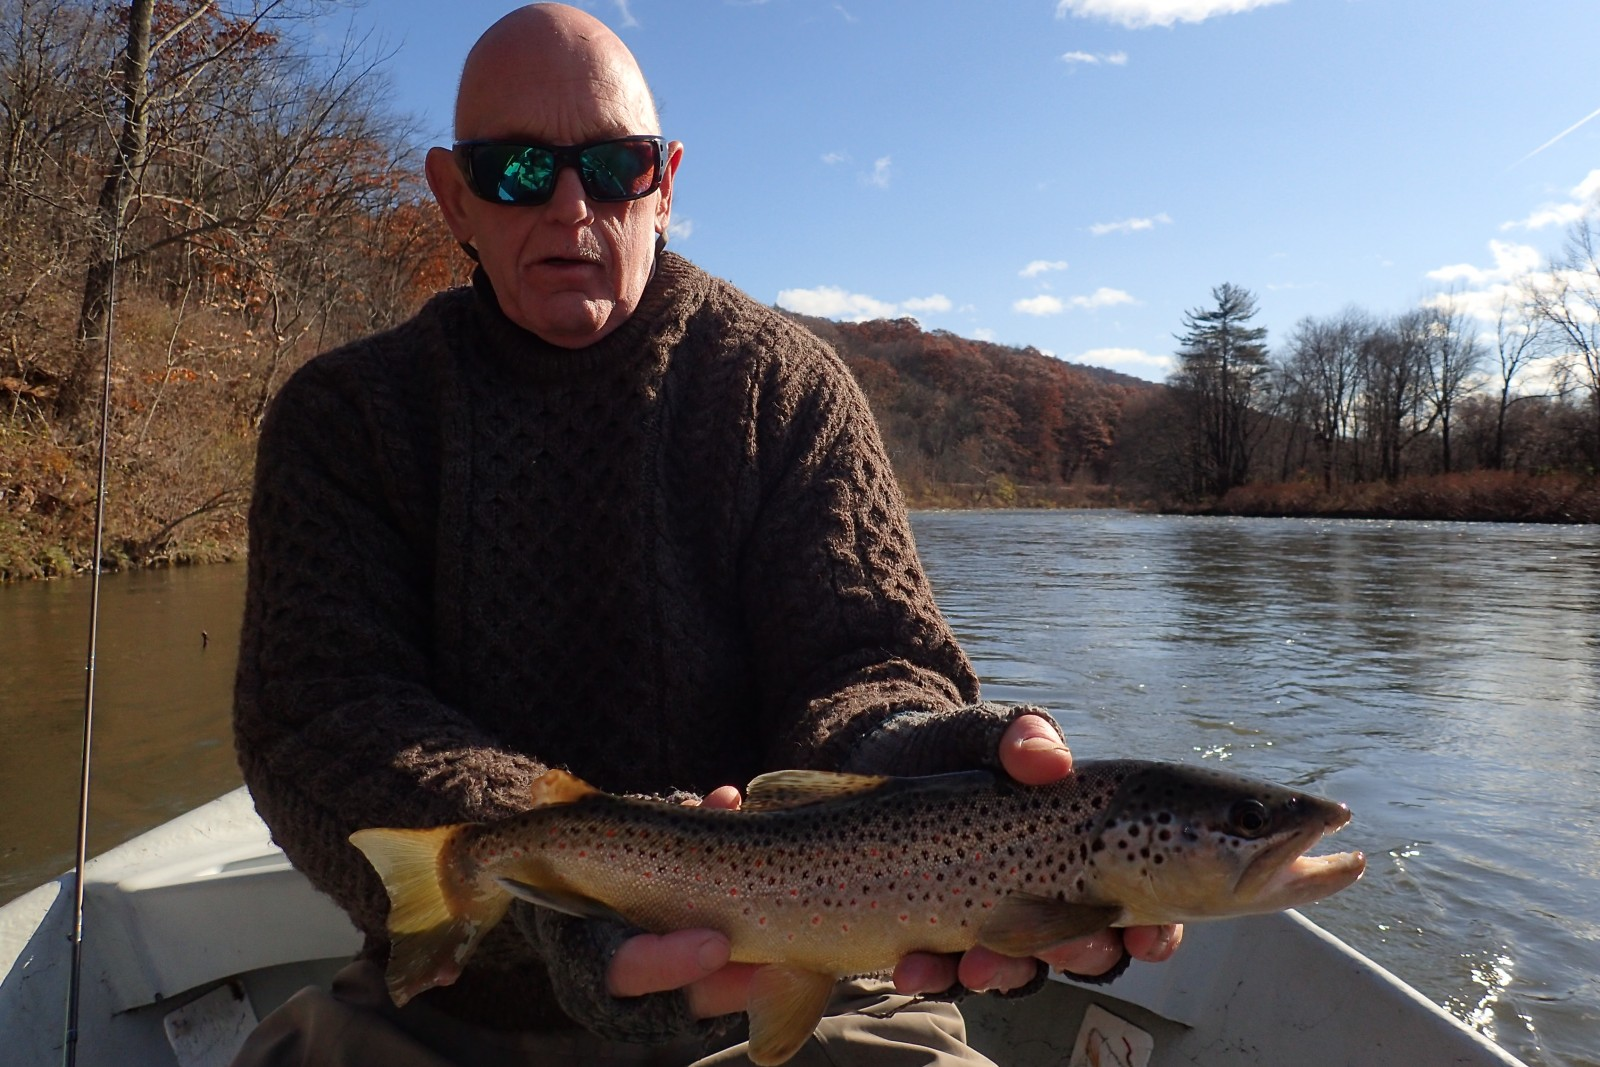 guided fly fishing float trips on the upper delaware river with jesse filingo of filingo fly fishing for wild brown trout